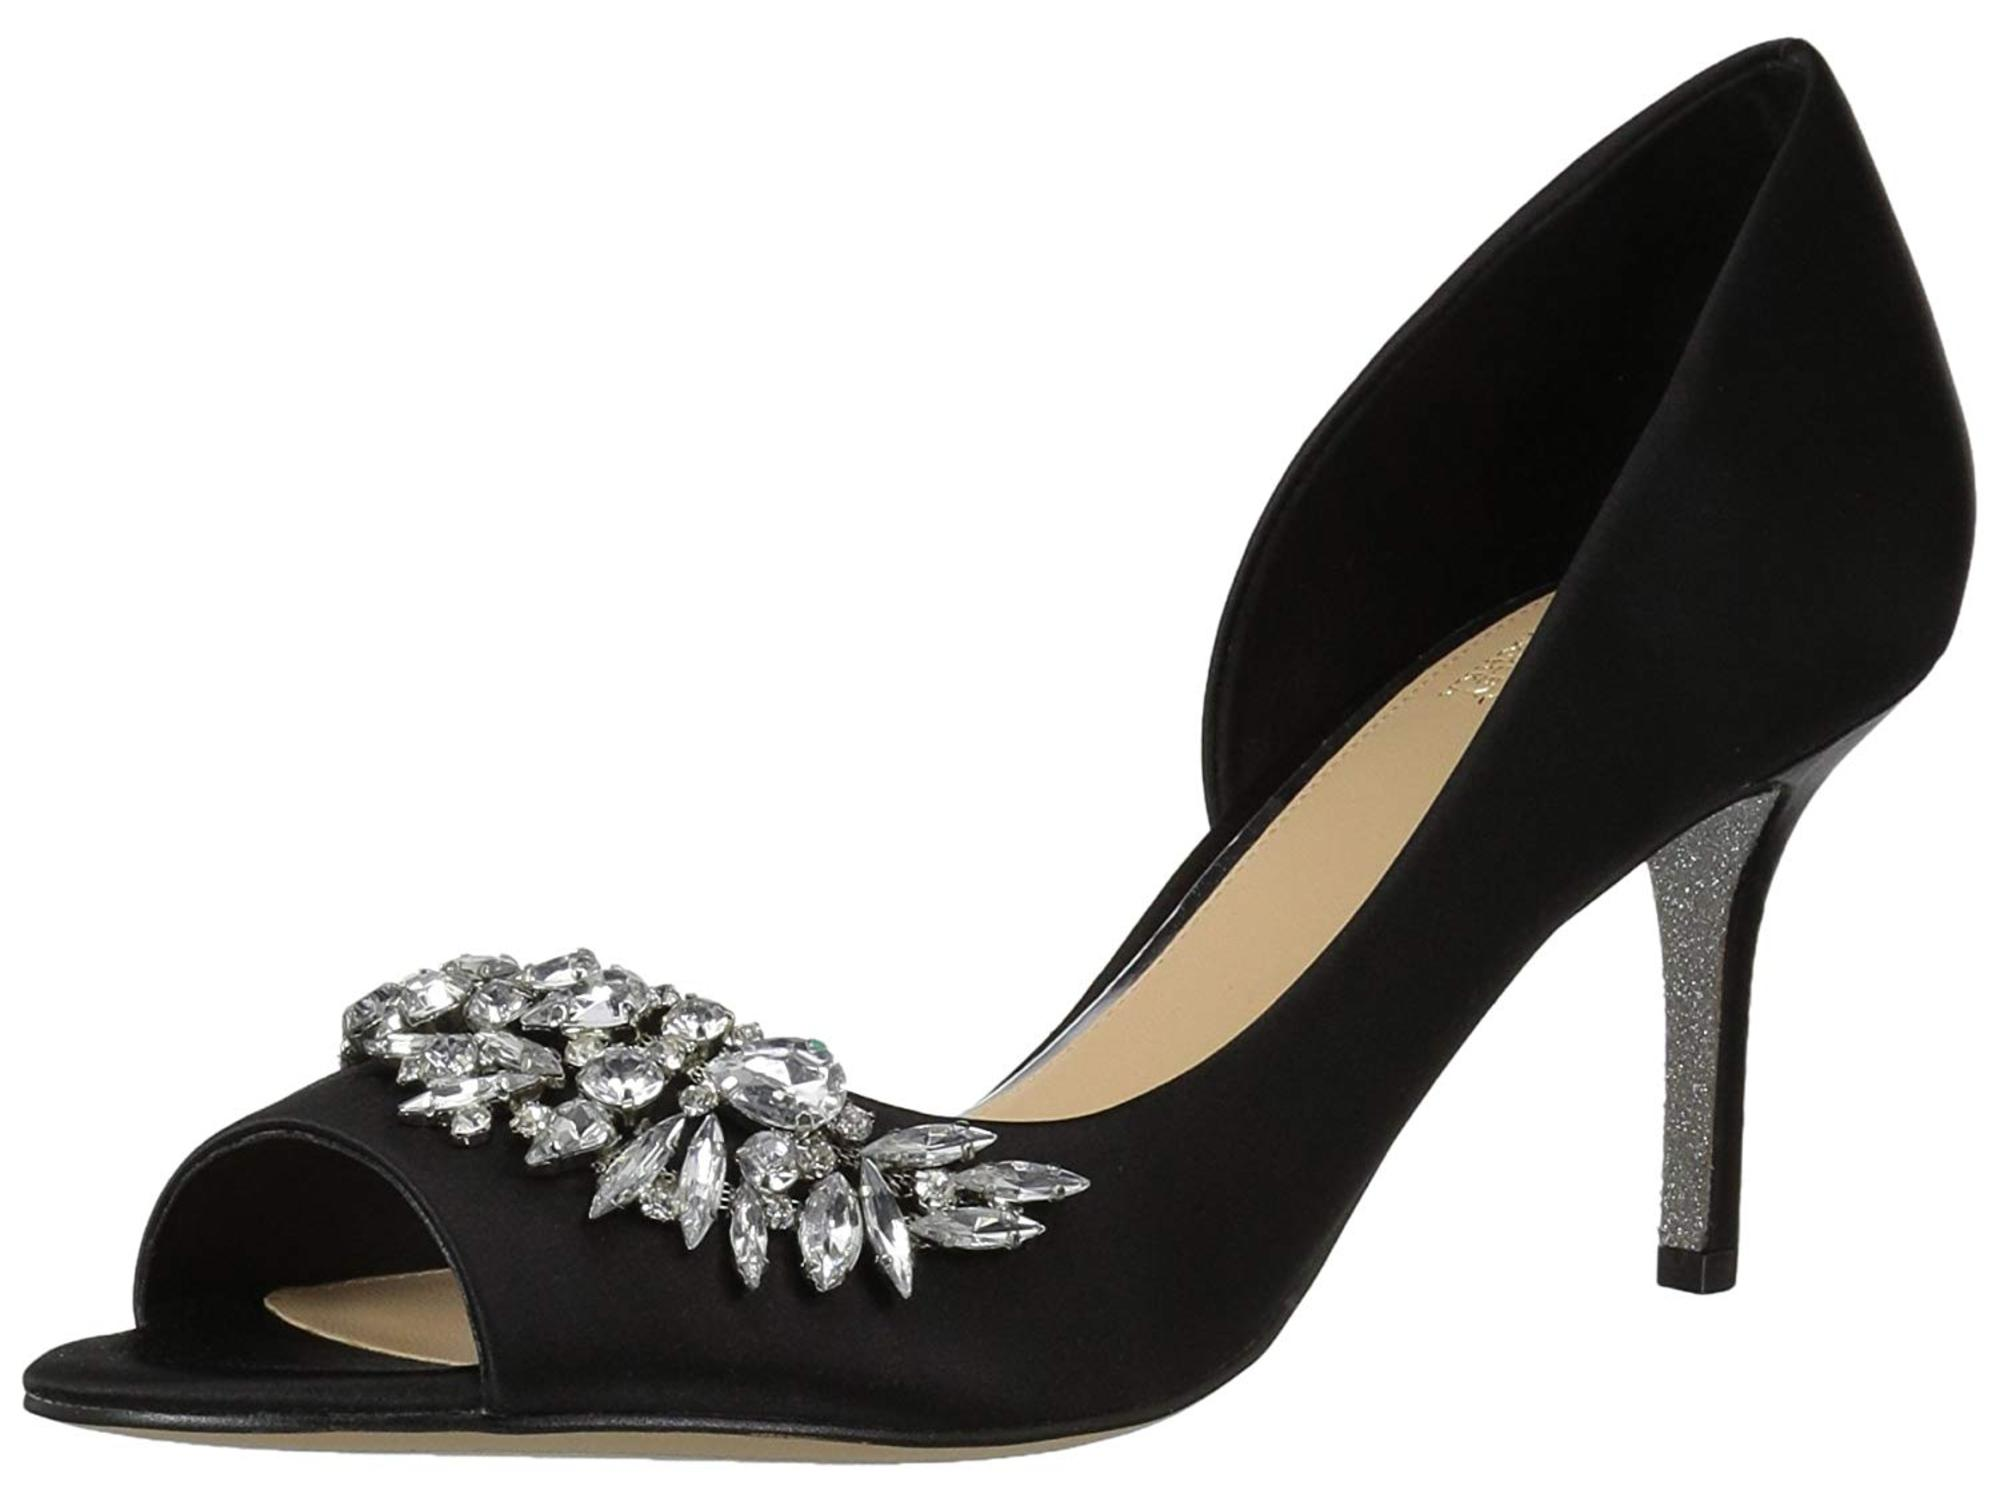 Mark and James BADGLEY MISCHKA Black Dress Pumps Shoes Sparkle NEW!